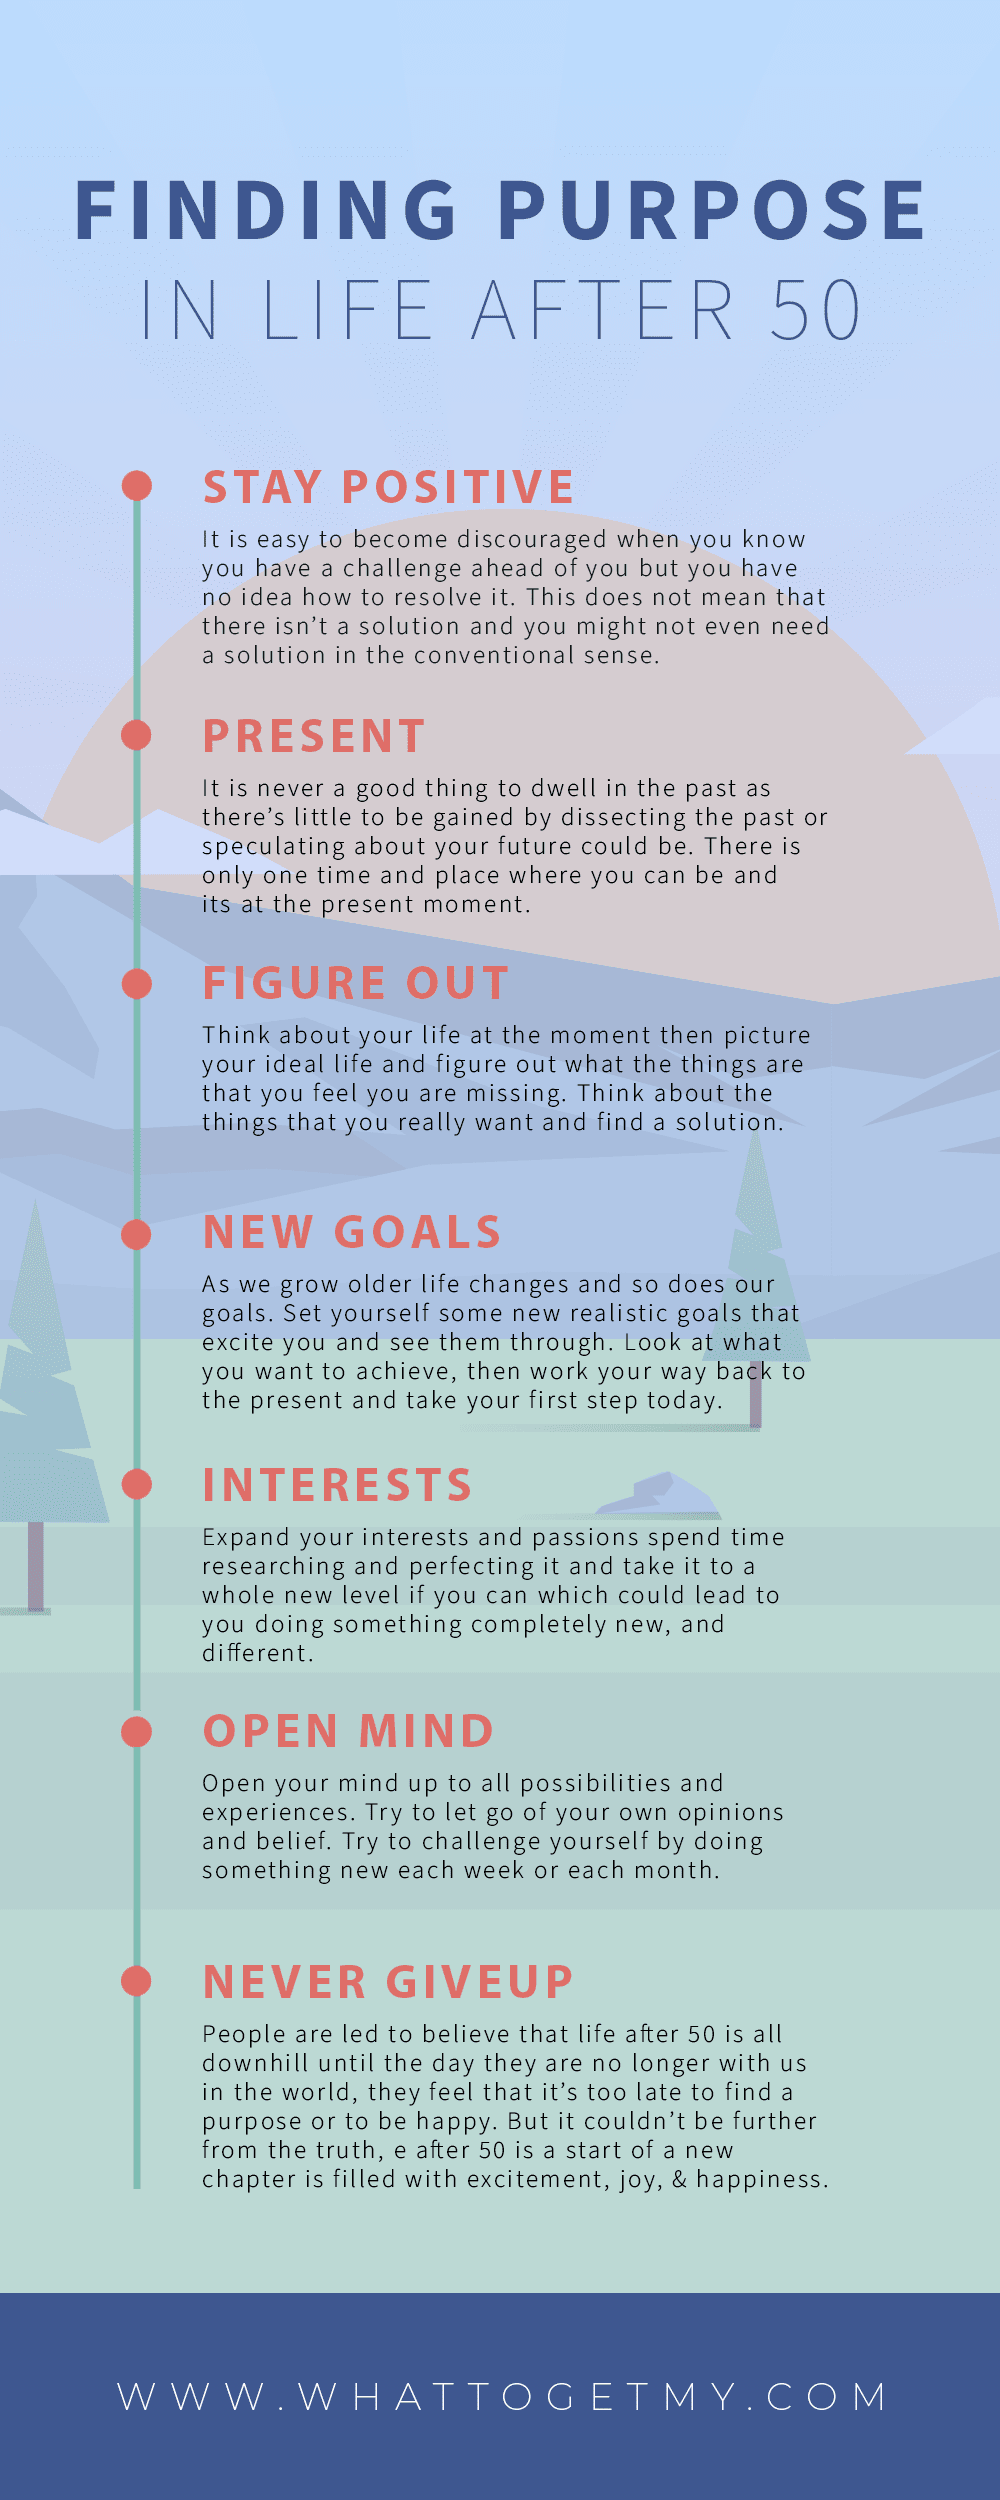 Infographic Finding Purpose In Life After 50